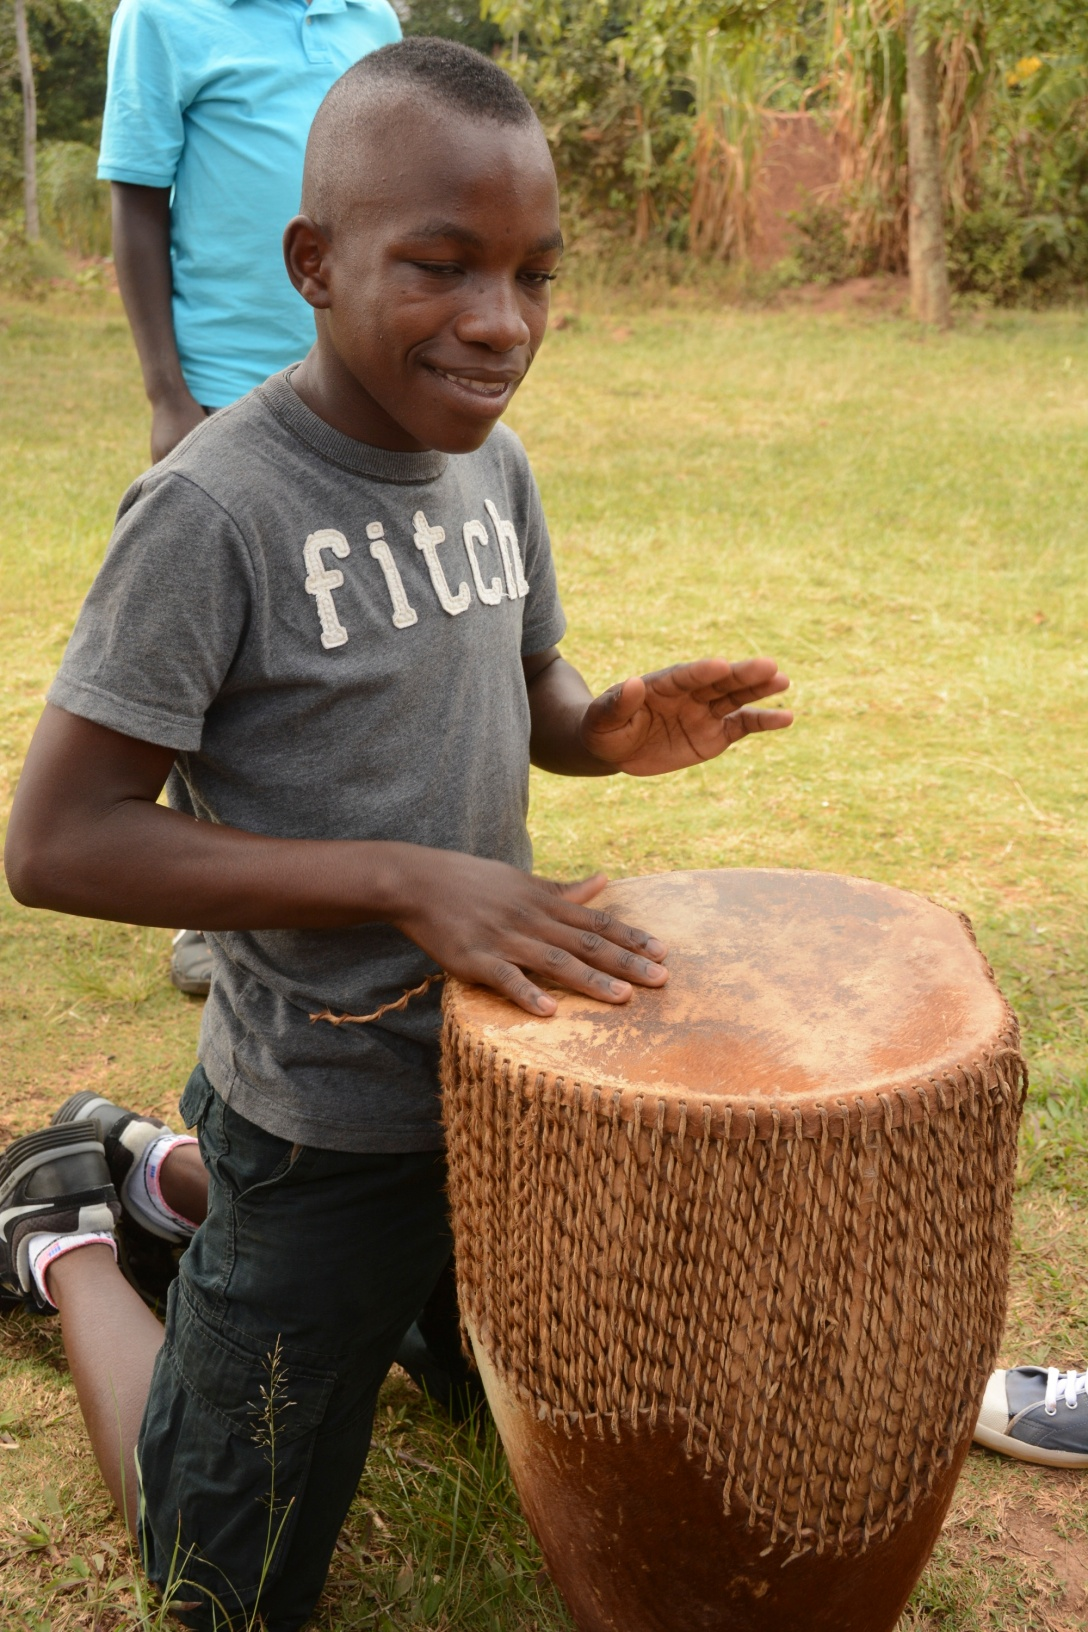 Ronnie leading worship with the drum.